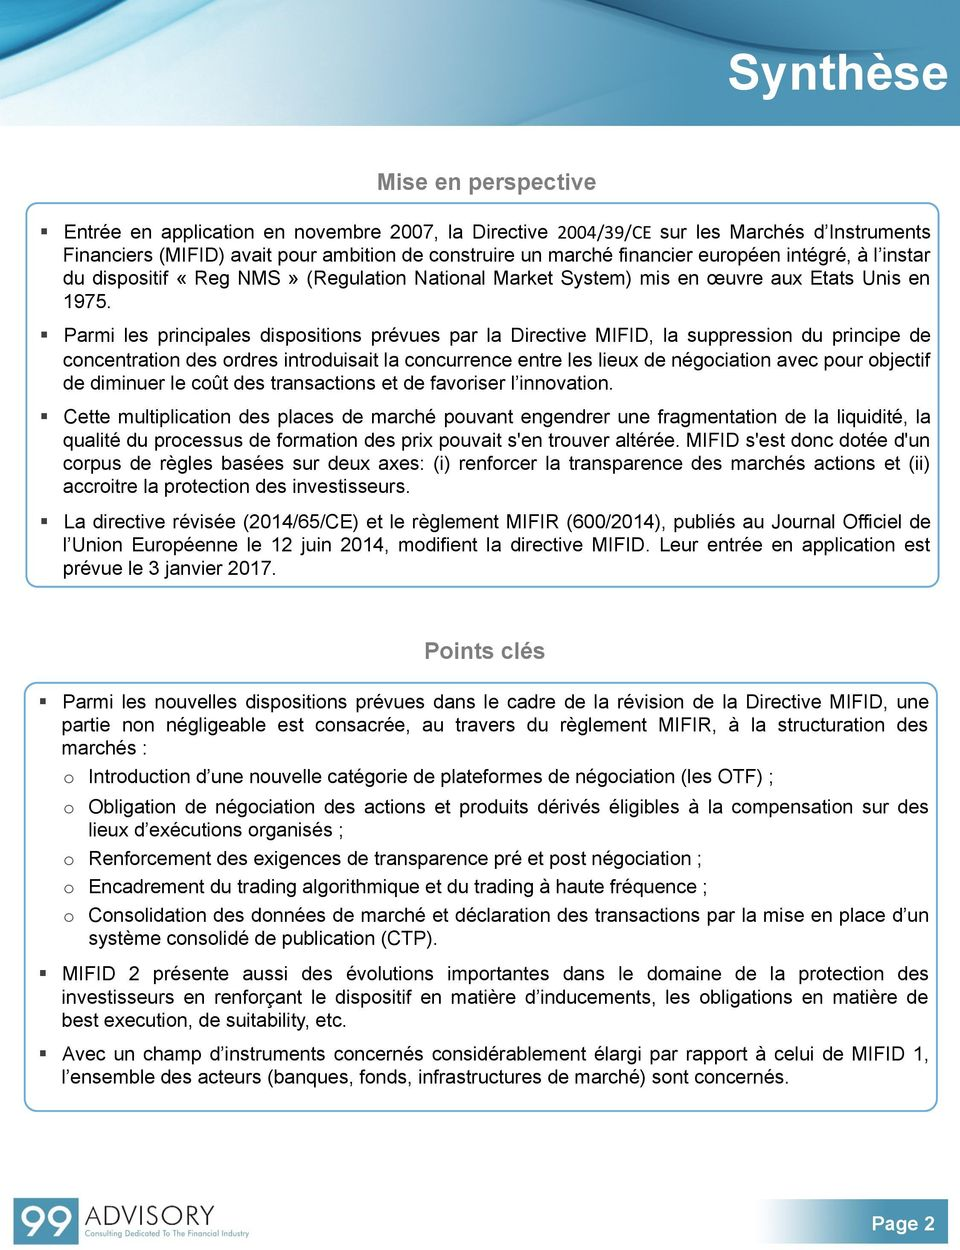 Parmi les principales dispositions prévues par la Directive MIFID, la suppression du principe de concentration des ordres introduisait la concurrence entre les lieux de négociation avec pour objectif